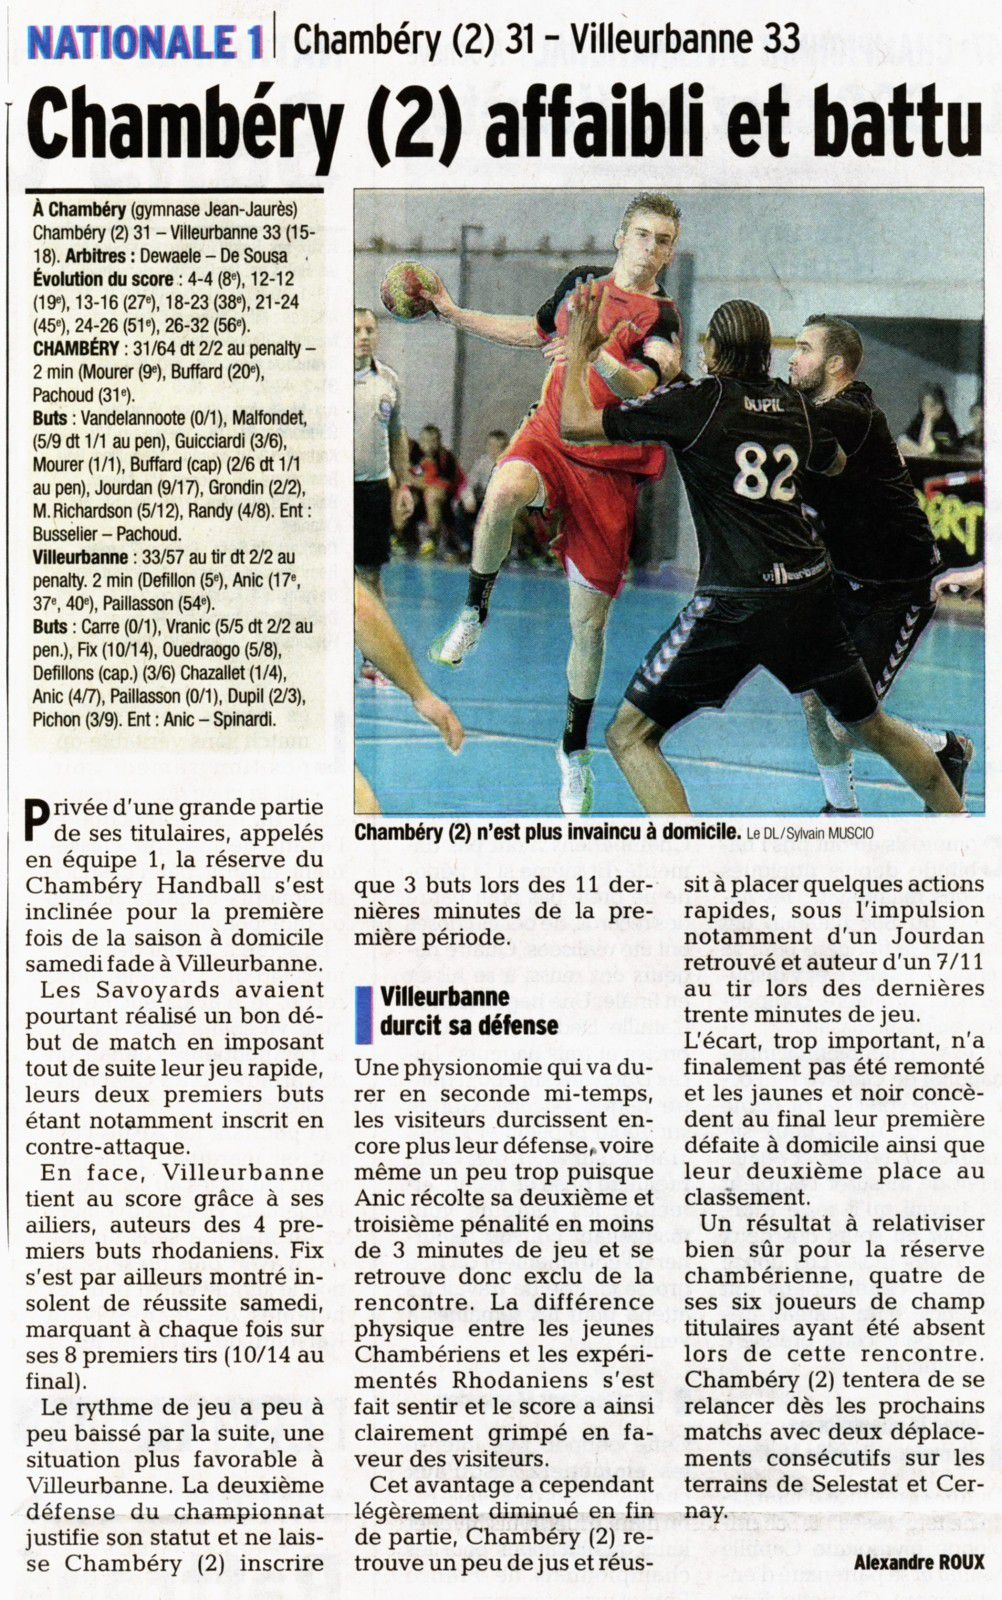 N1-article-CHAMBERY--VILLEURBANNE-18-01-2014-copie-1.jpg